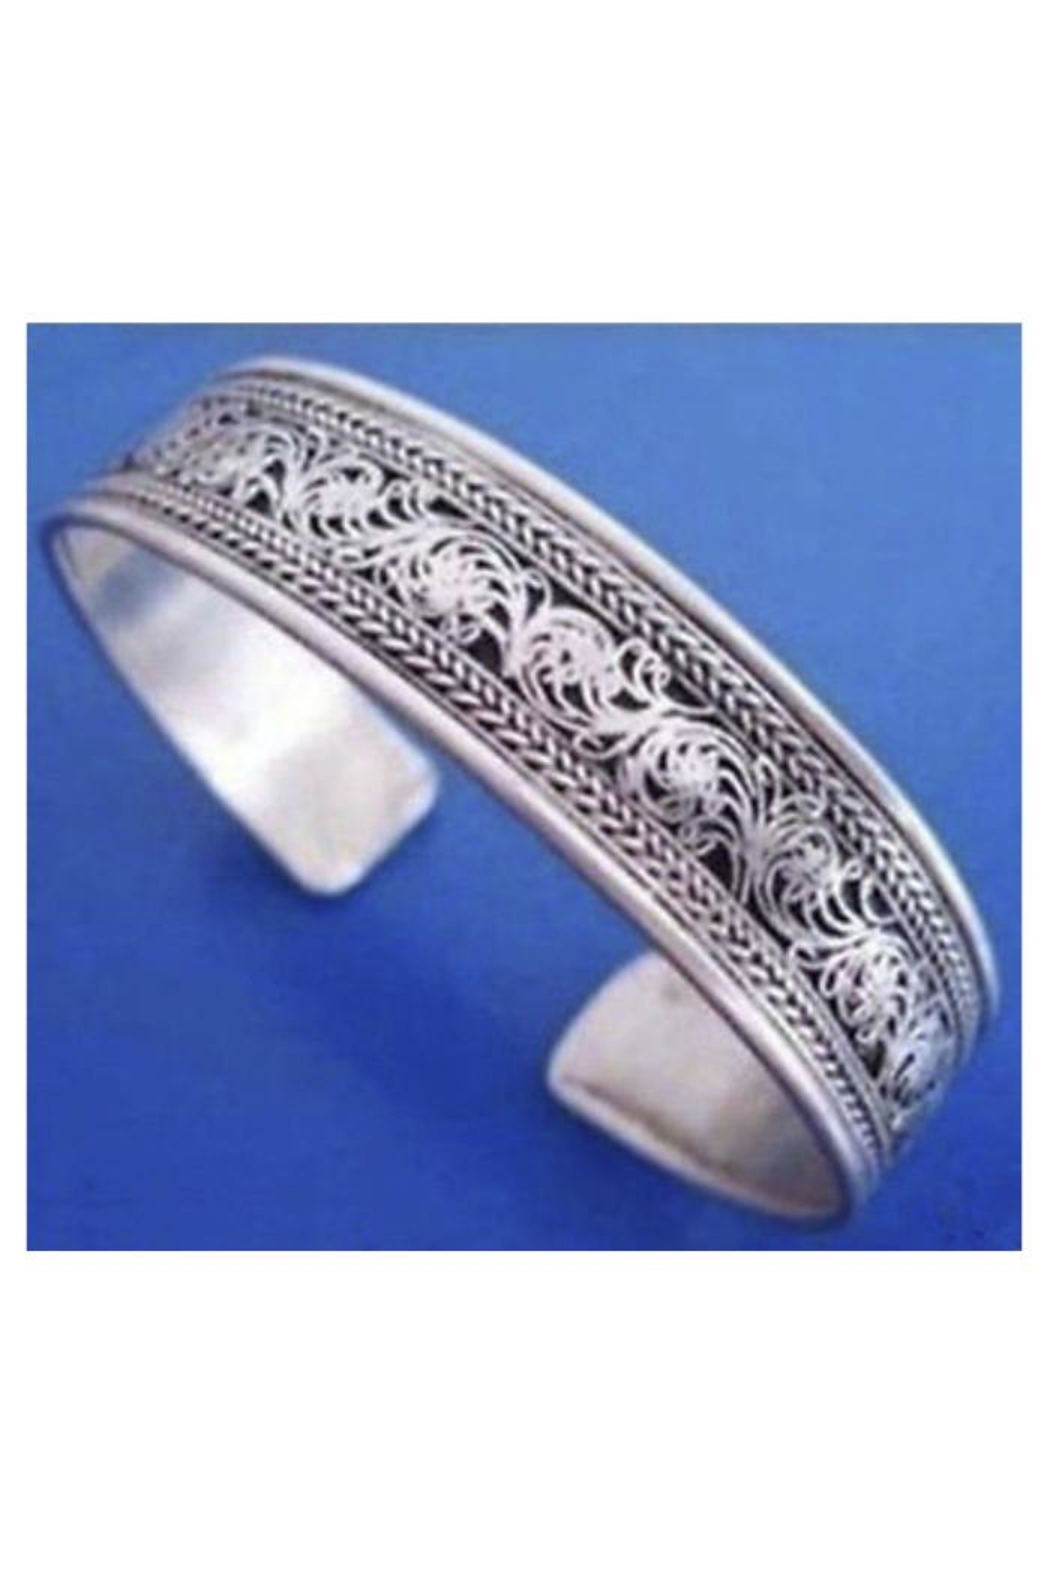 Twisted Designs Tibet-Silver Bangle-Style Cuff-Bracelet - Main Image